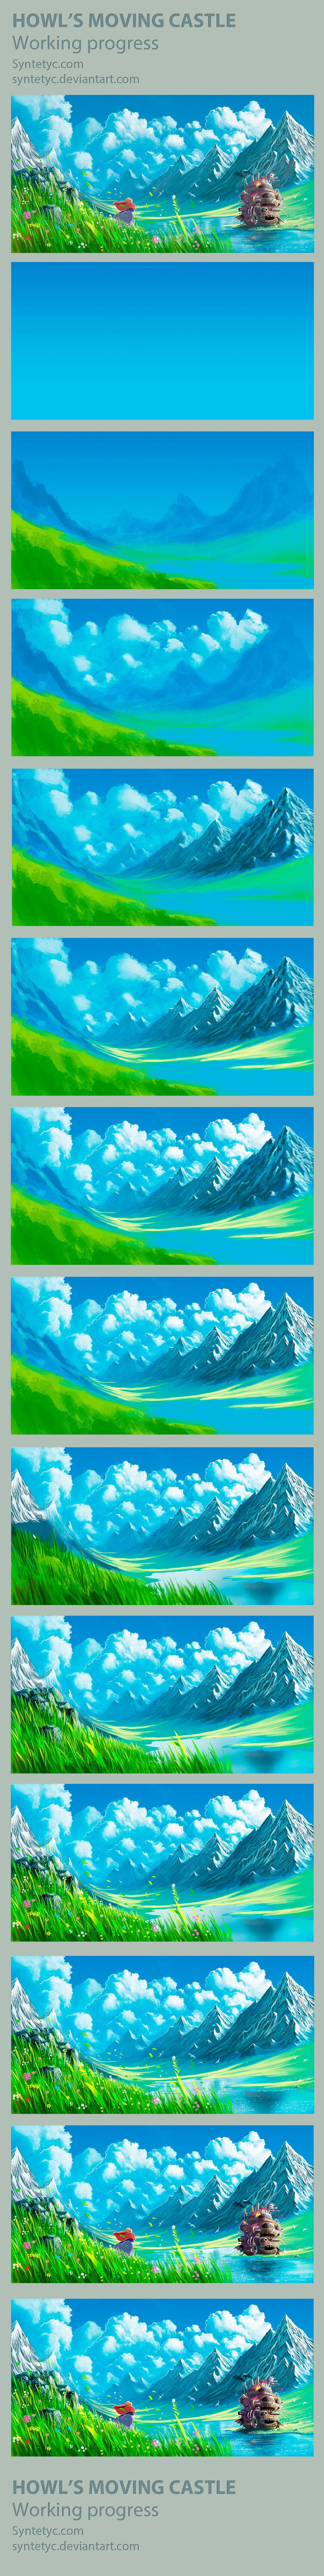 Howl's Moving Castle - Process by *Syntetyc on deviantART